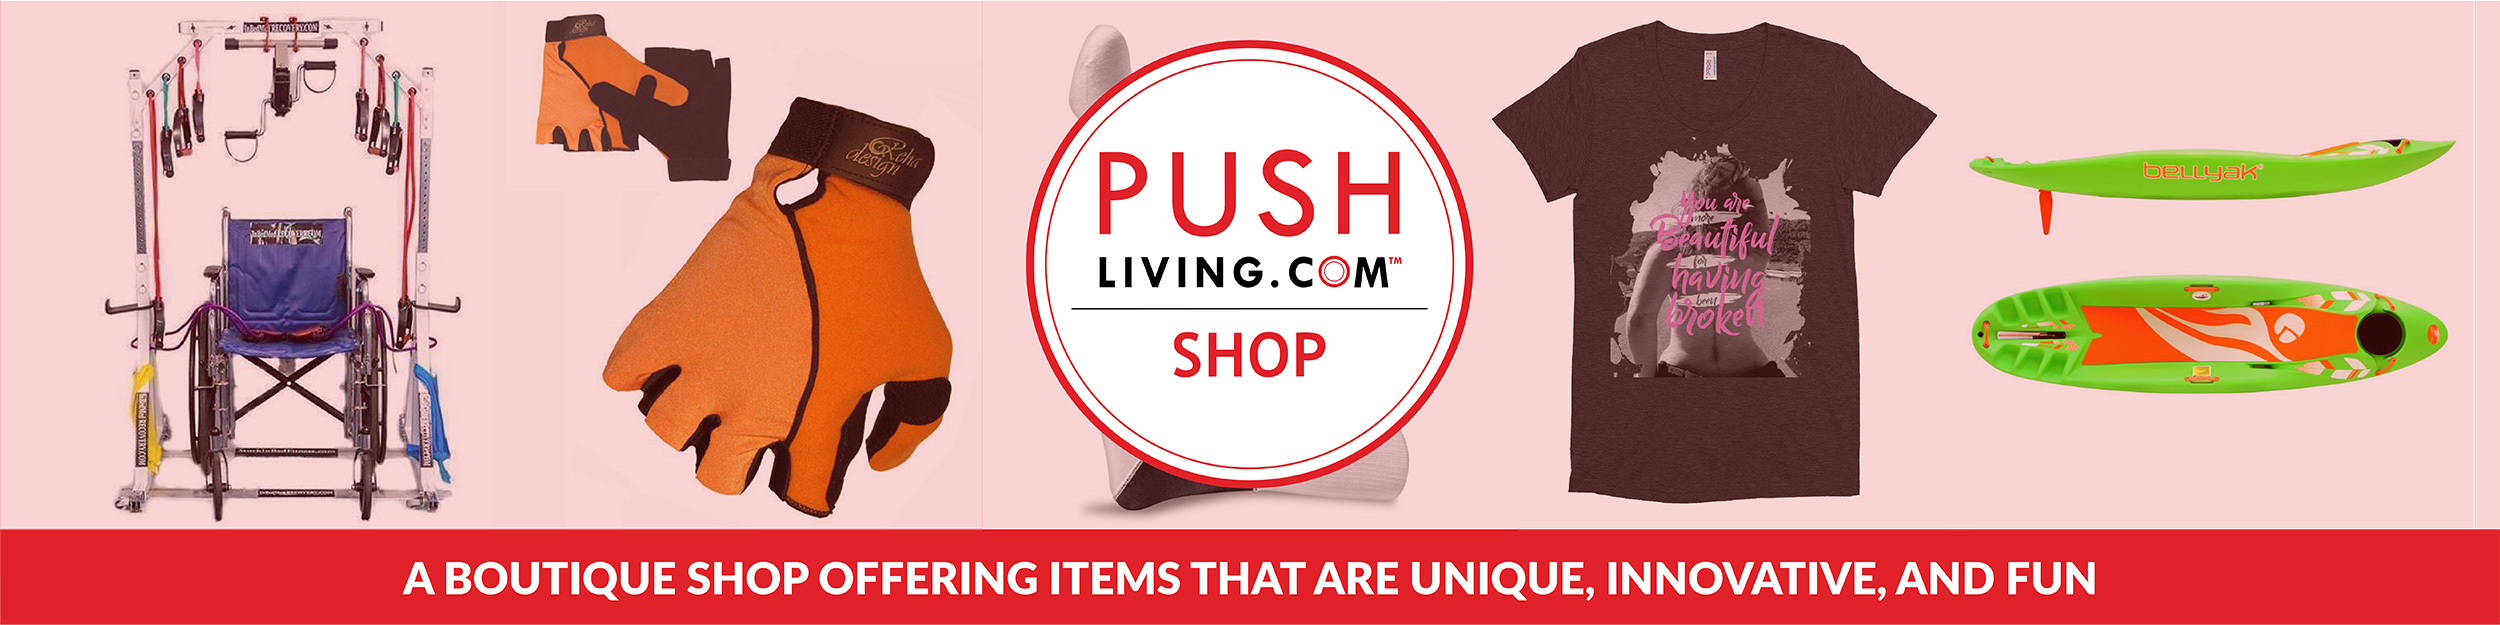 Pushliving Shop - A boutique shop offering items that are unique, innovative, and fun